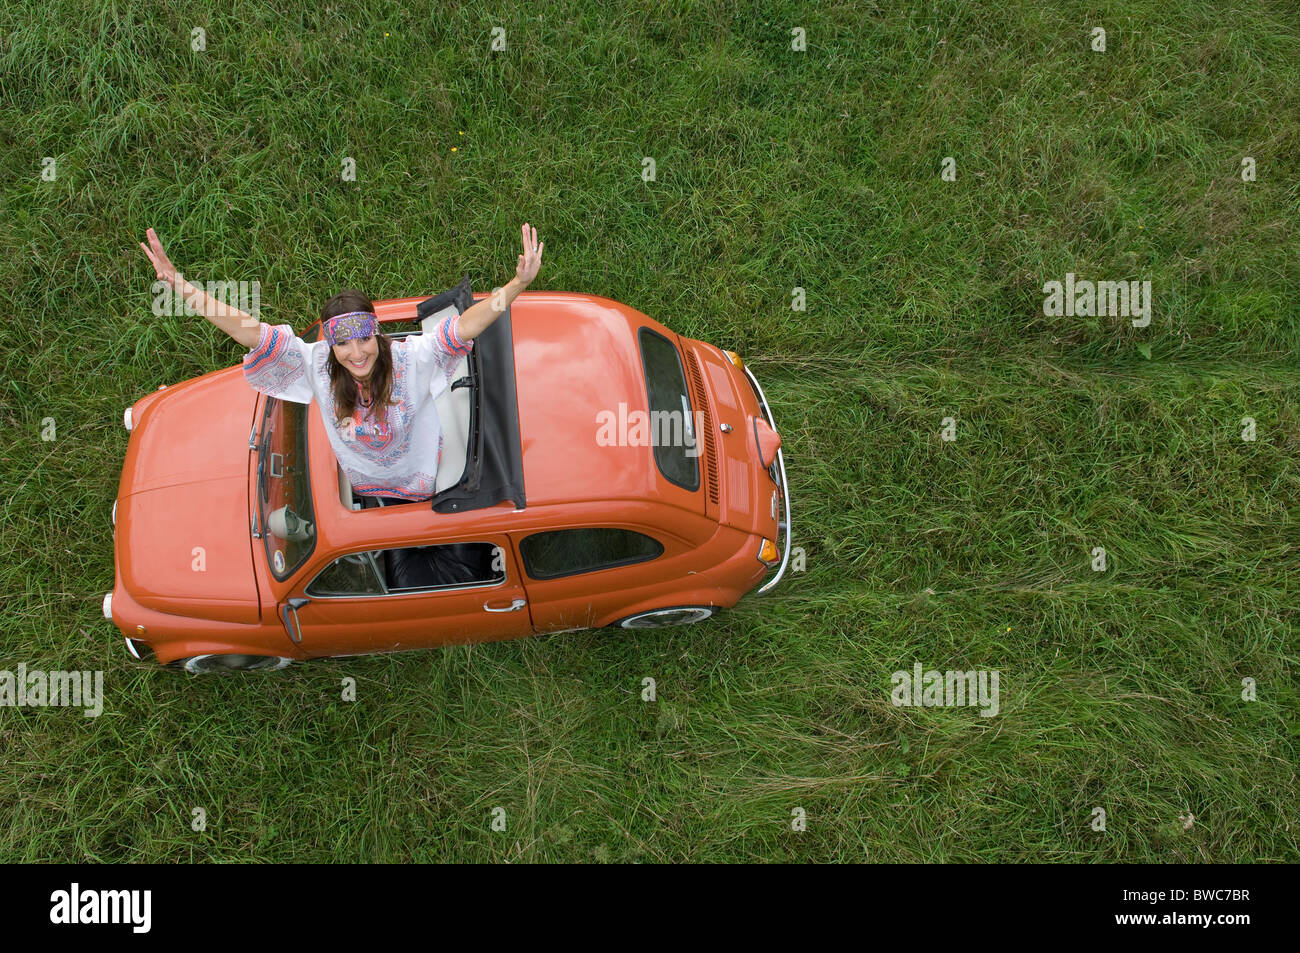 Femme hippie les étirements de voiture Photo Stock